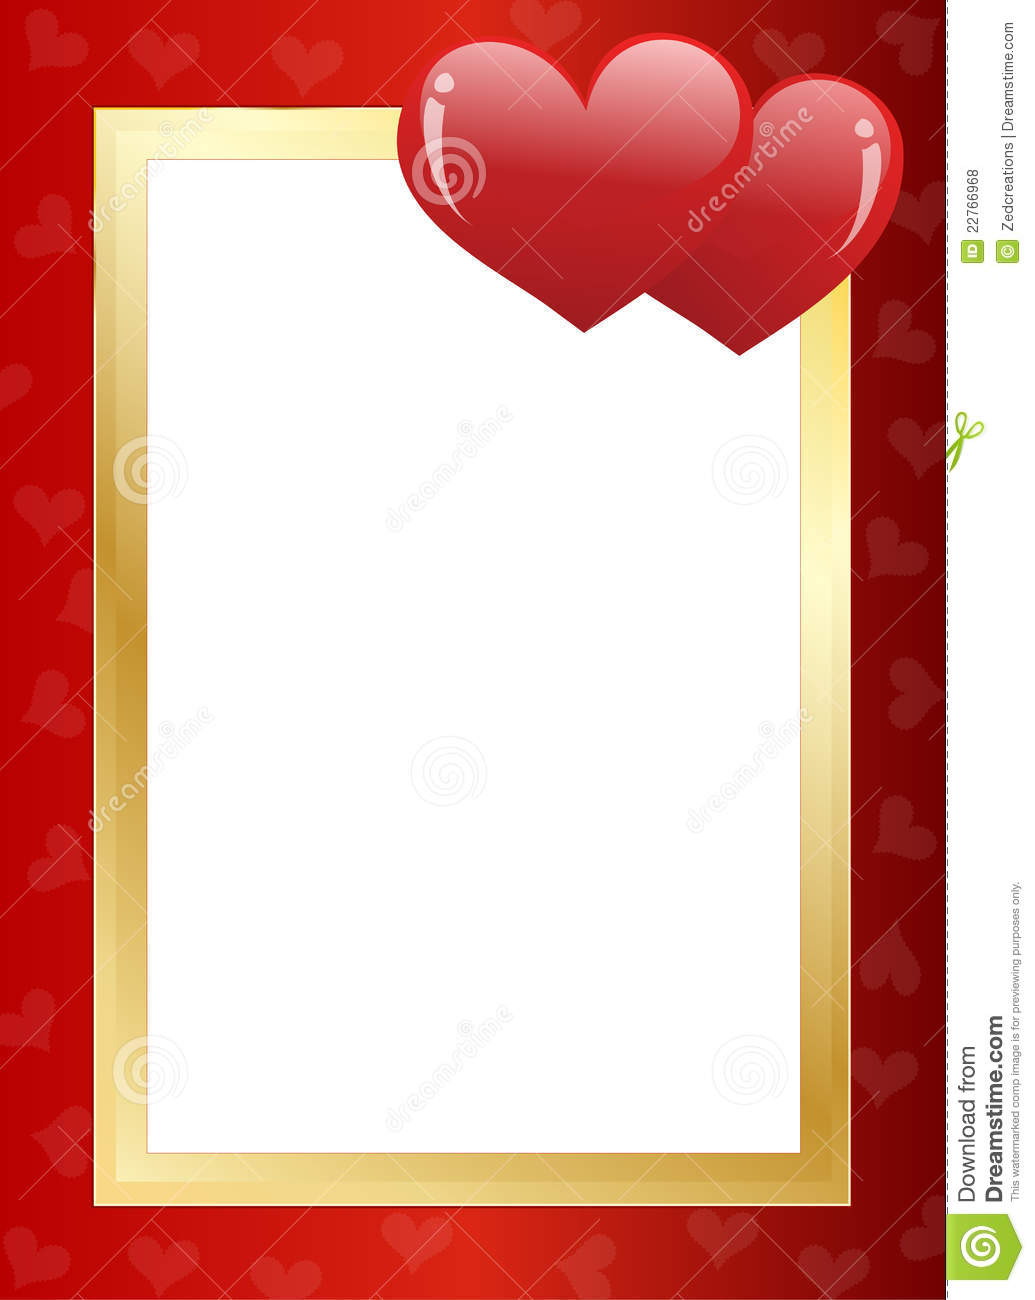 Love Borders And Frames Valentines day border